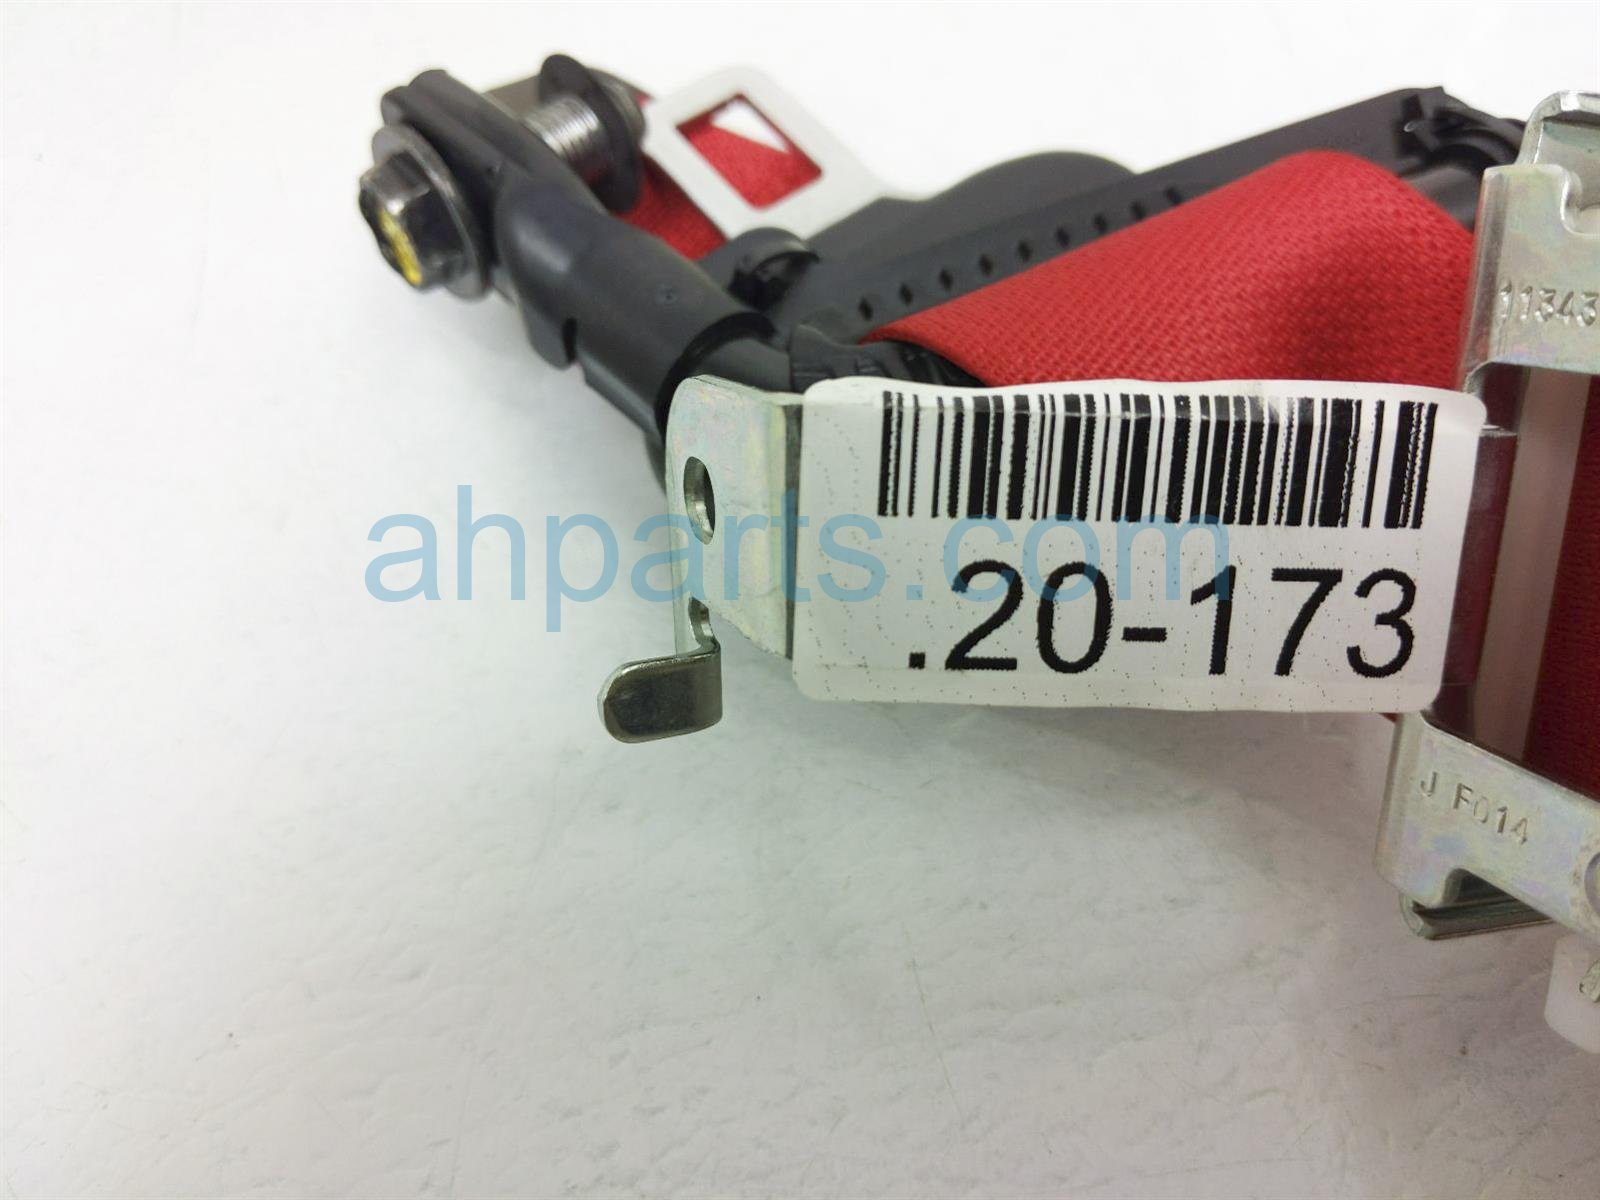 2018 Honda Civic Rear Passenger Seat Belt Type R Red 04824 TGH A00ZA Replacement